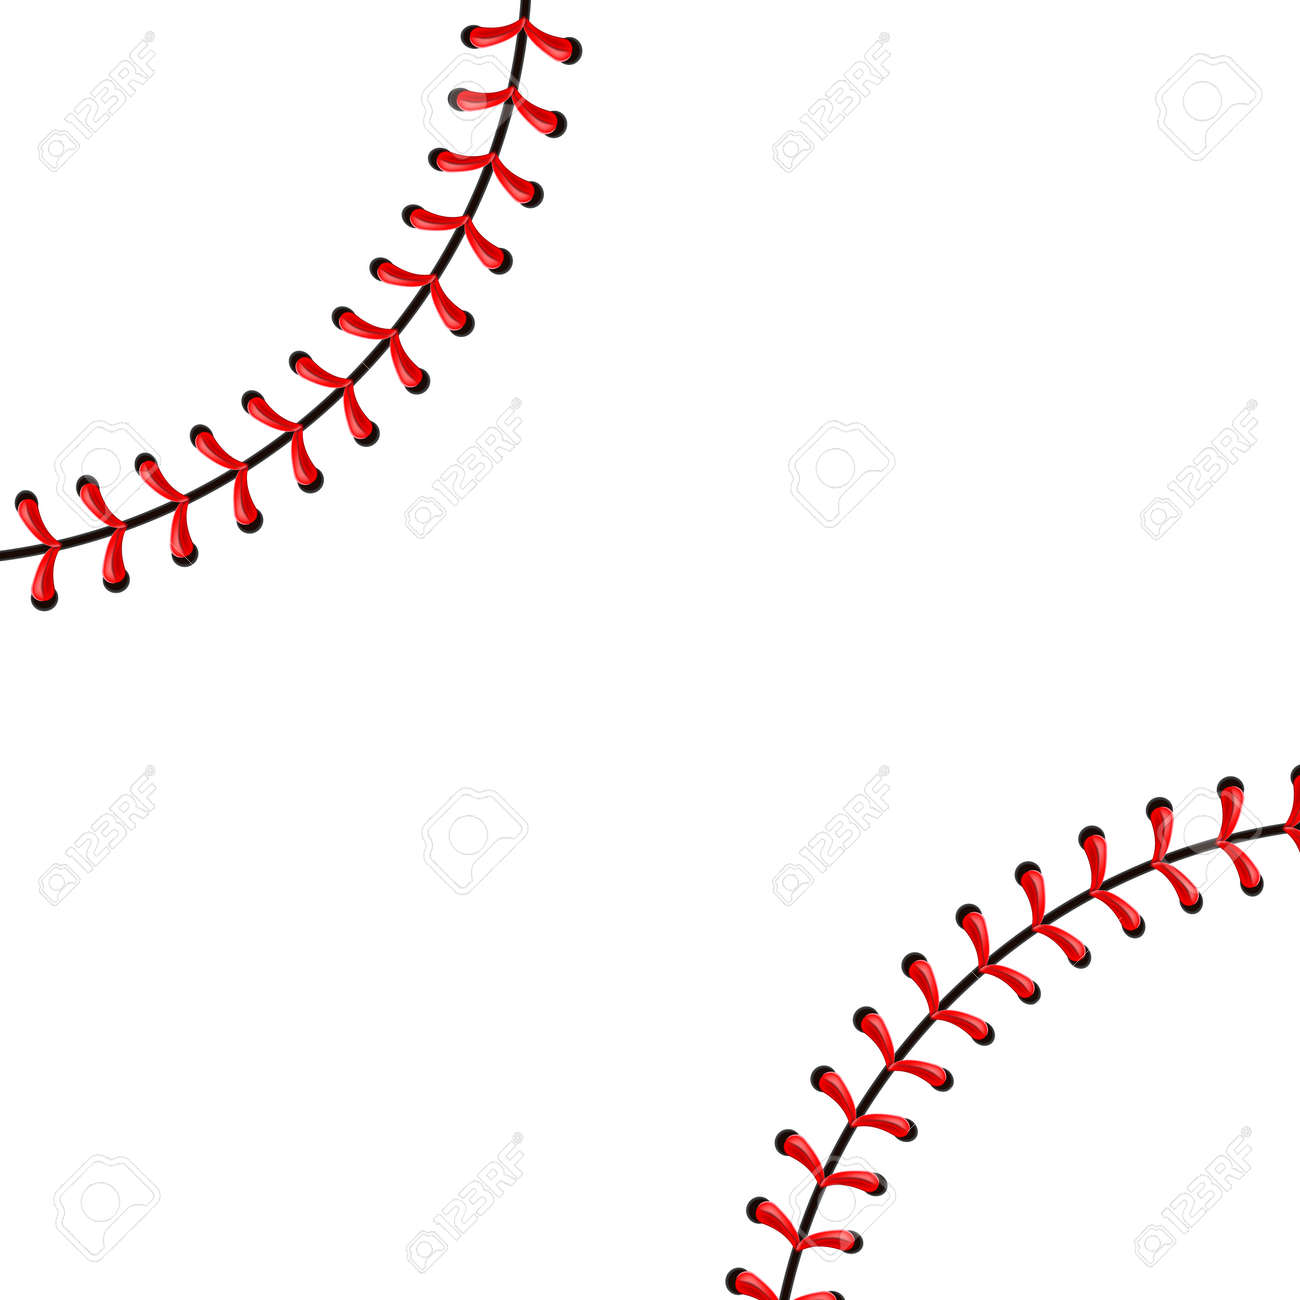 Creative Vector Illustration Of Sports Baseball Ball Stitches Royalty Free Cliparts Vectors And Stock Illustration Image 115005359